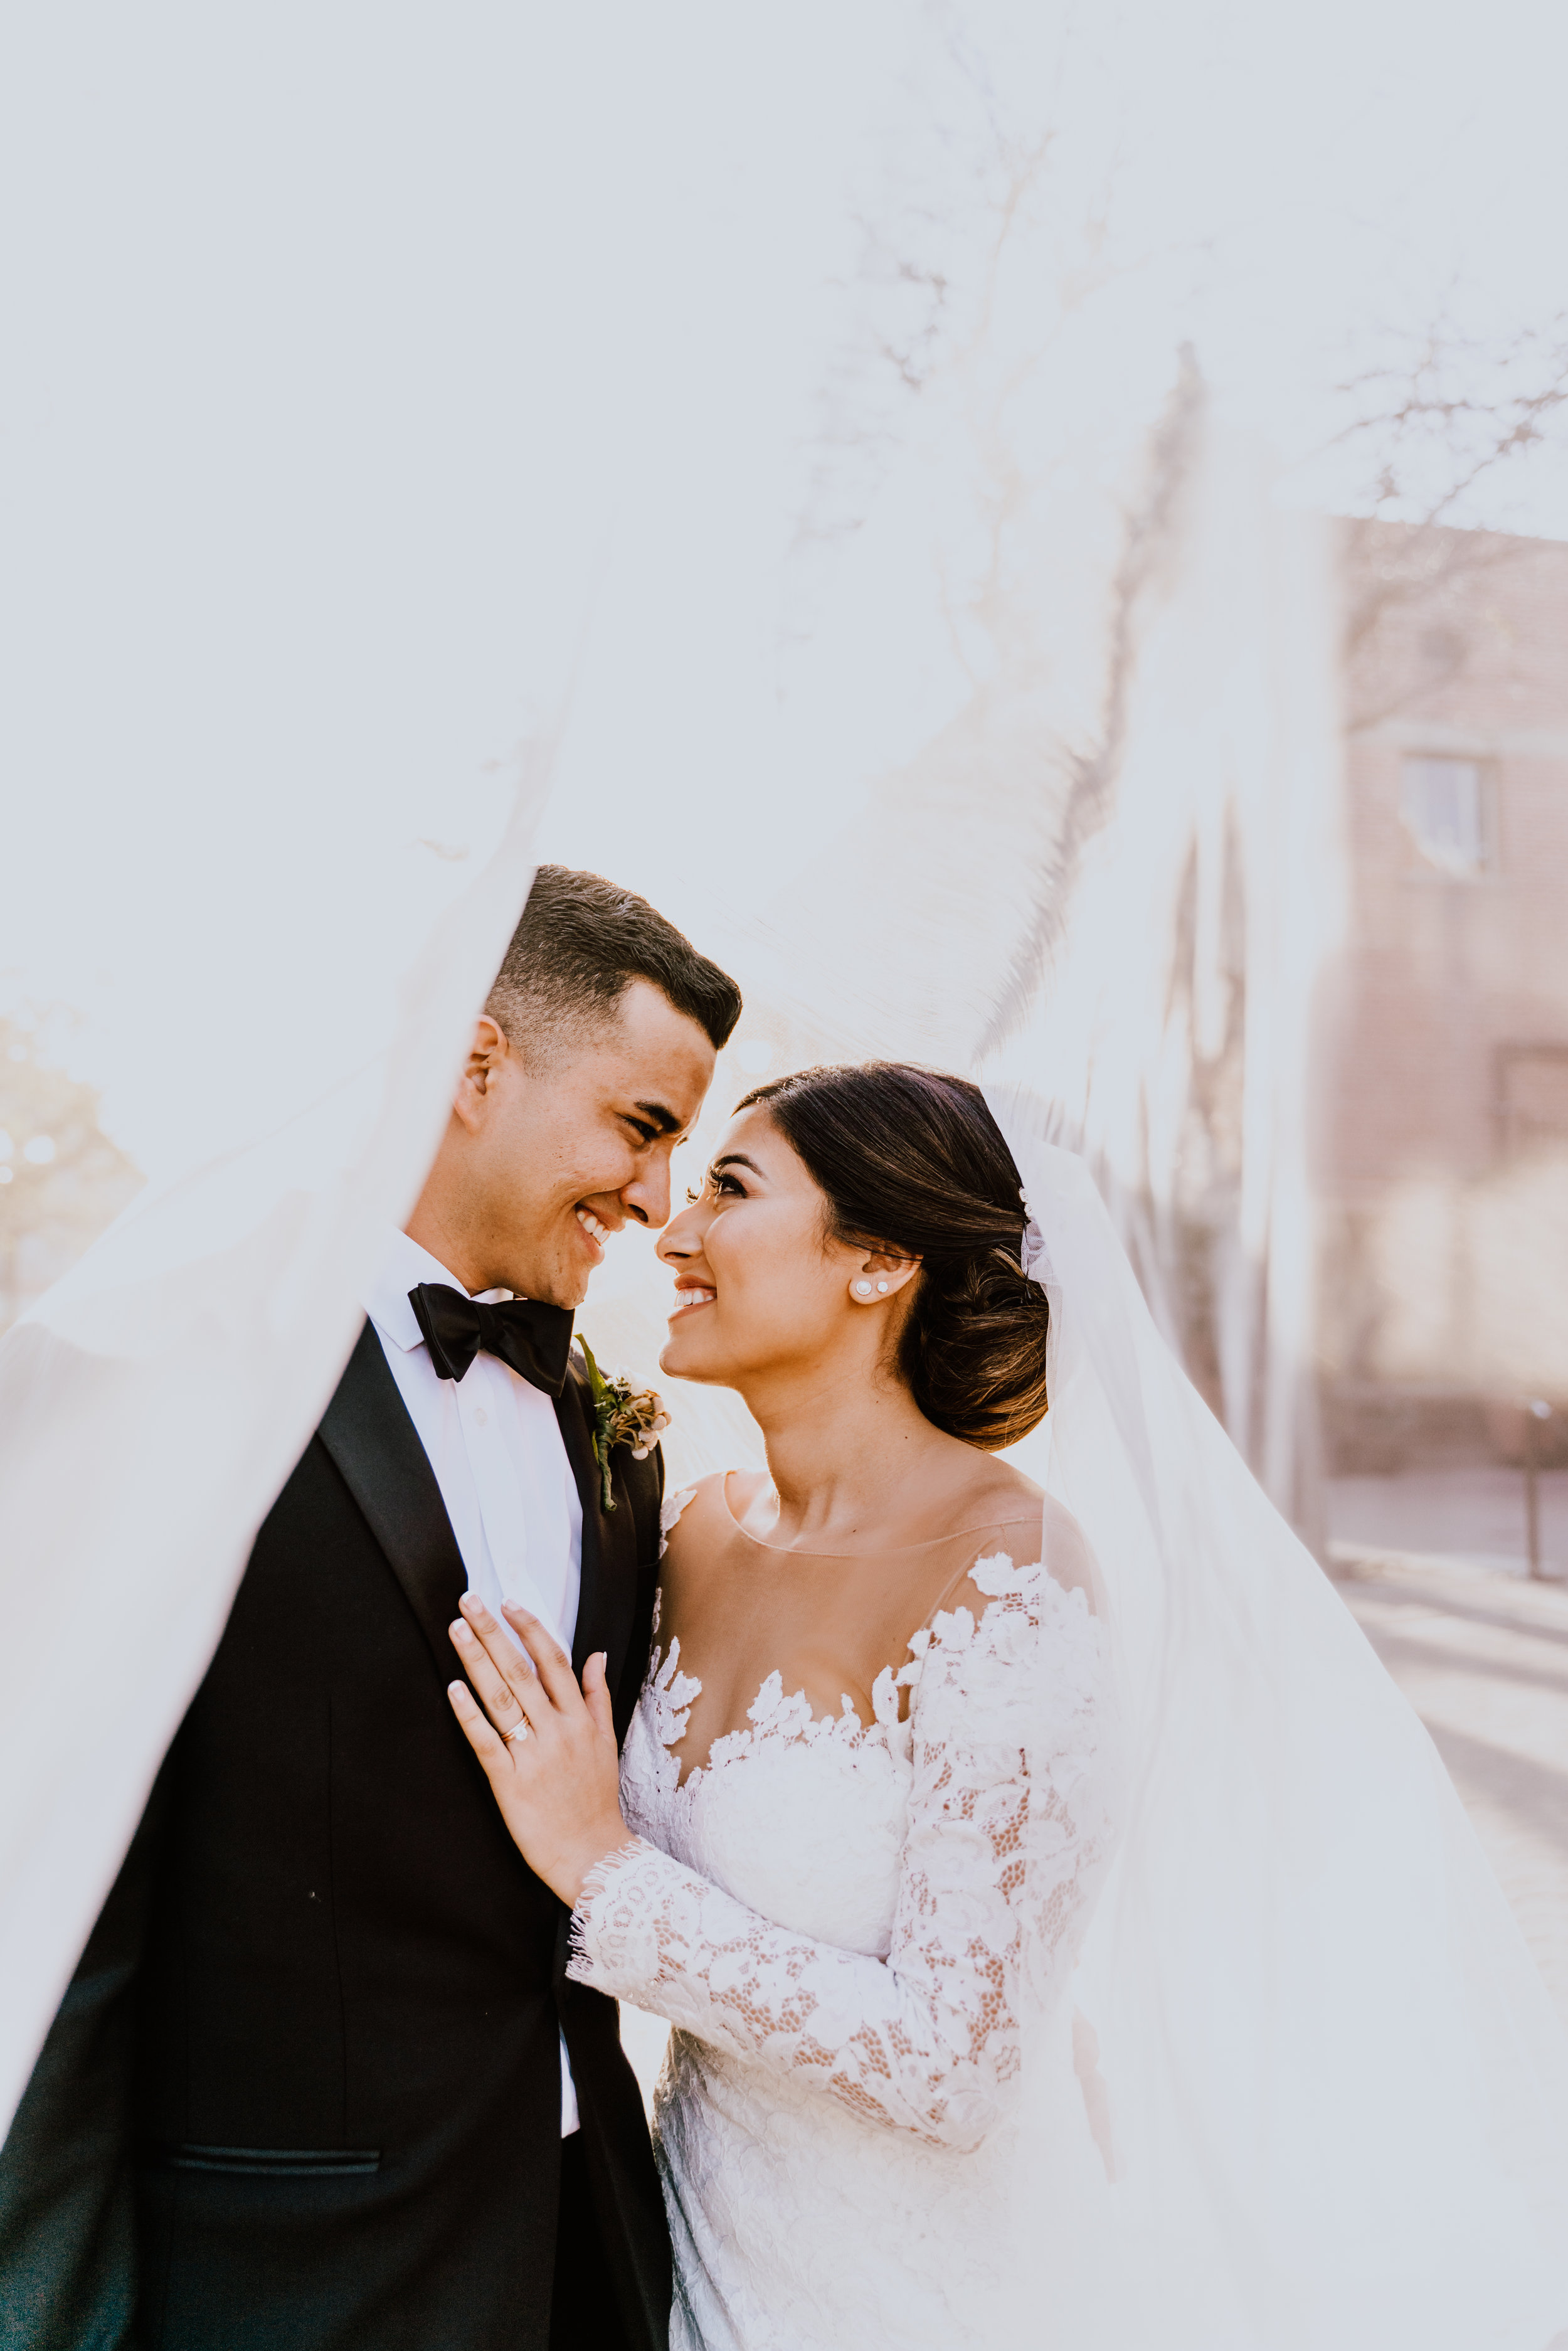 modern films candid photography for the wild whimsical madly in love  - socal wedding and elopement destination photographer and videographer